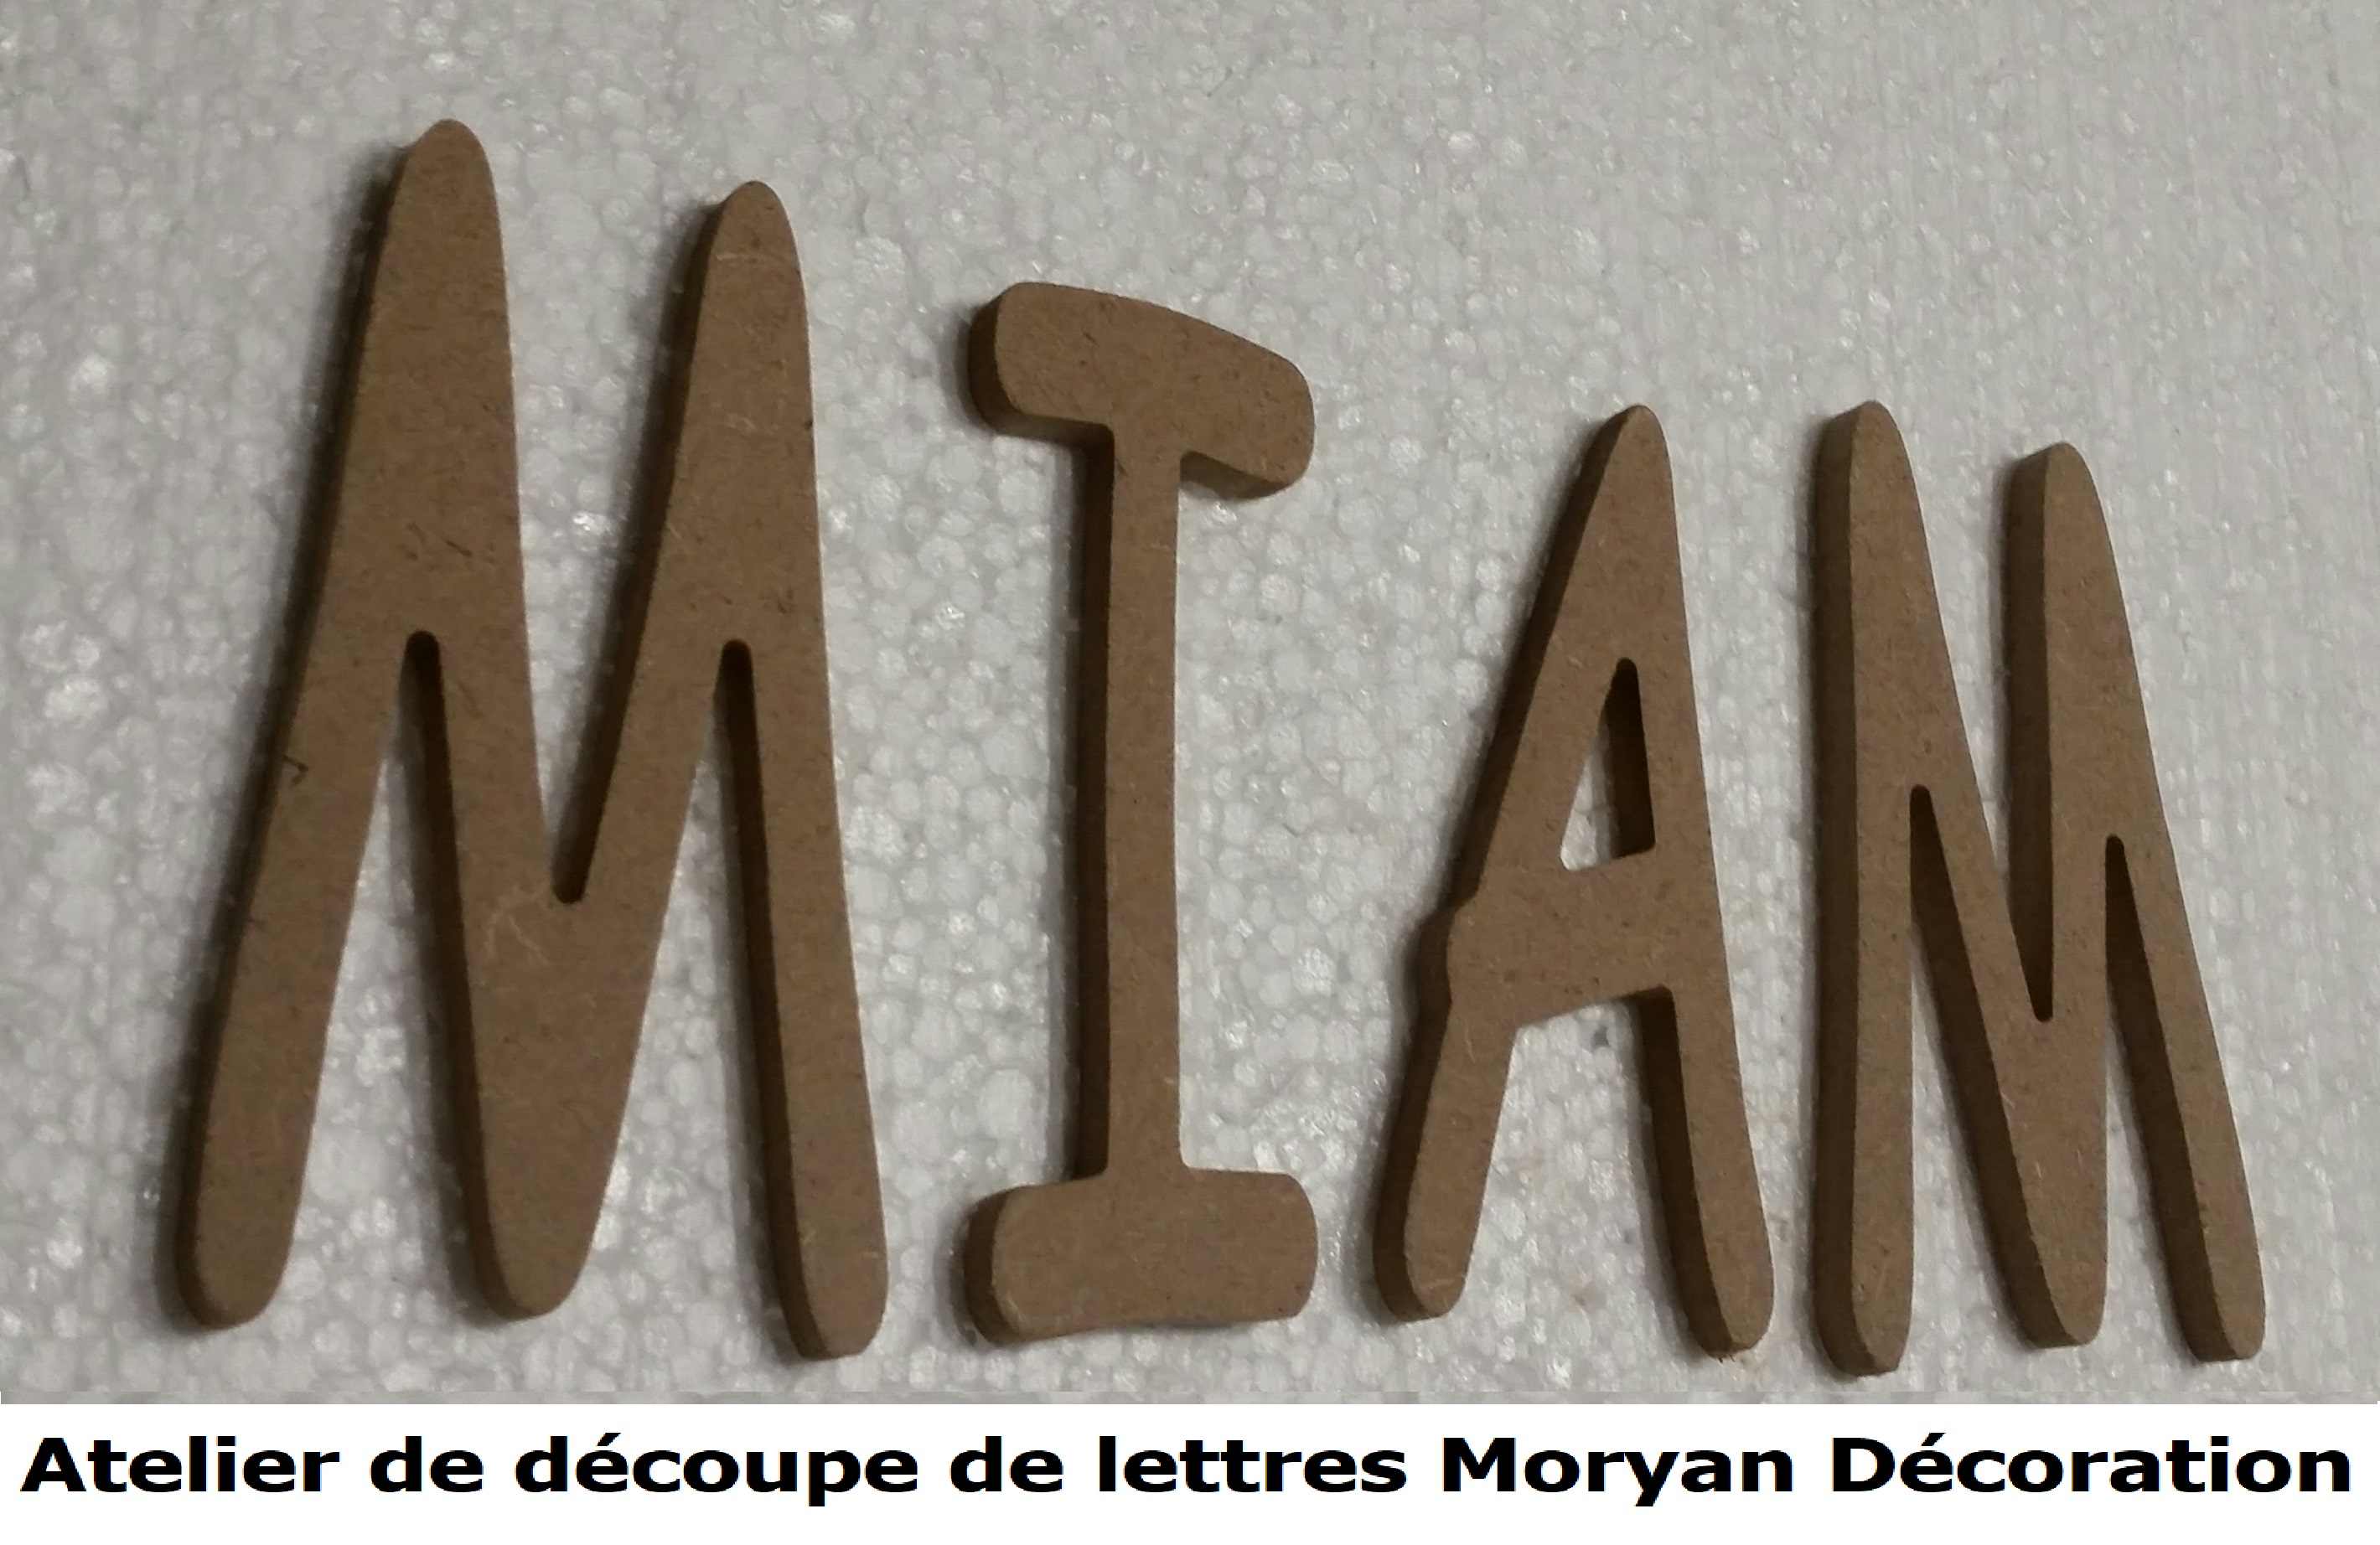 Lettre decorative MIAM